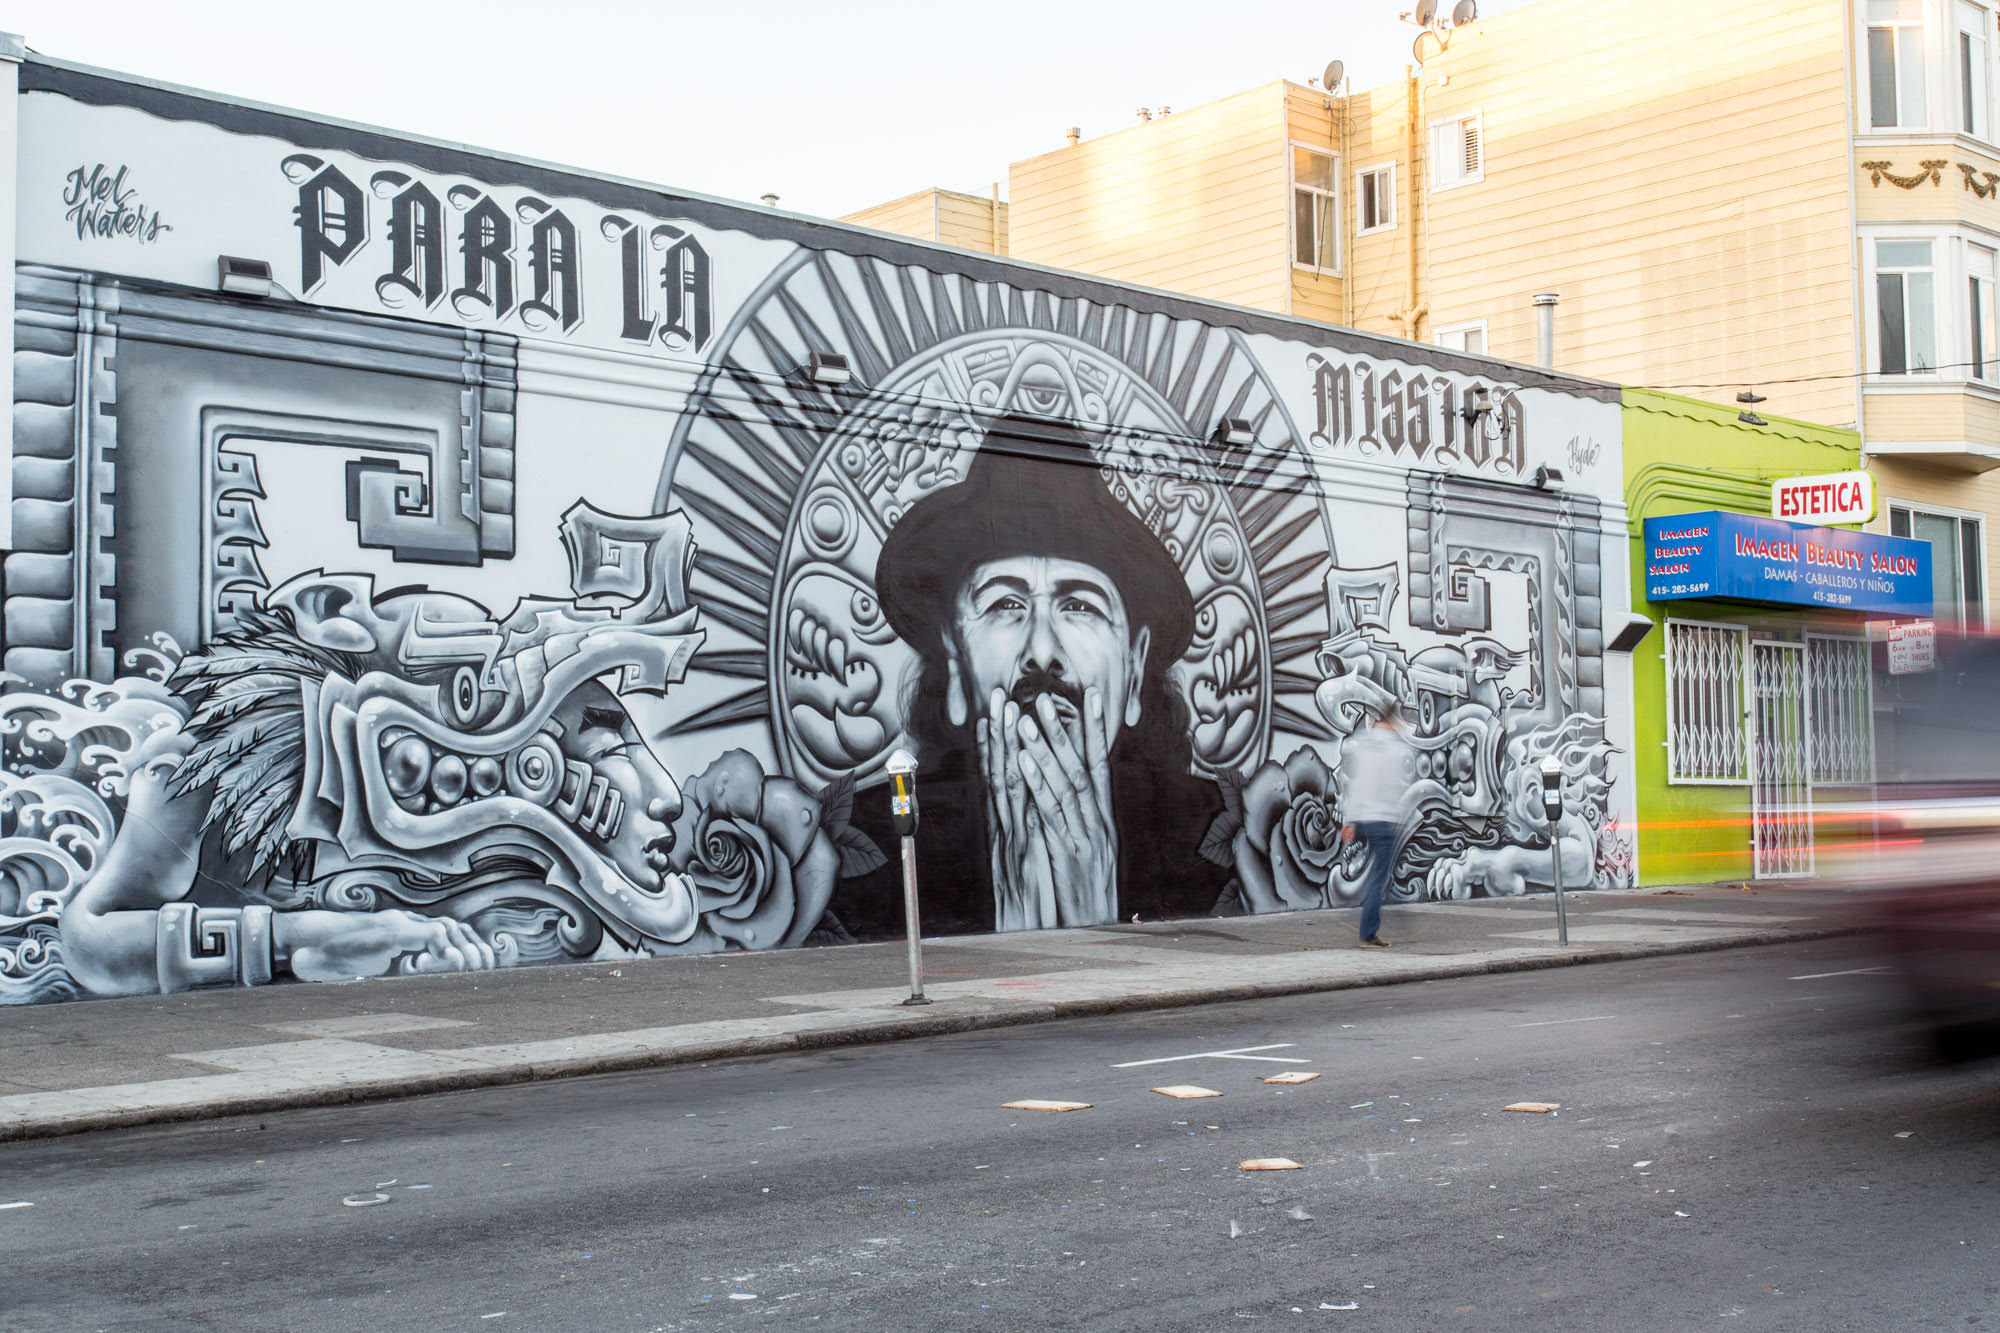 Para La Mission - Carlos Santana Portrait by Mel Waters. Collaboration with Hyde. 19th Street at Mission Street, 2015.